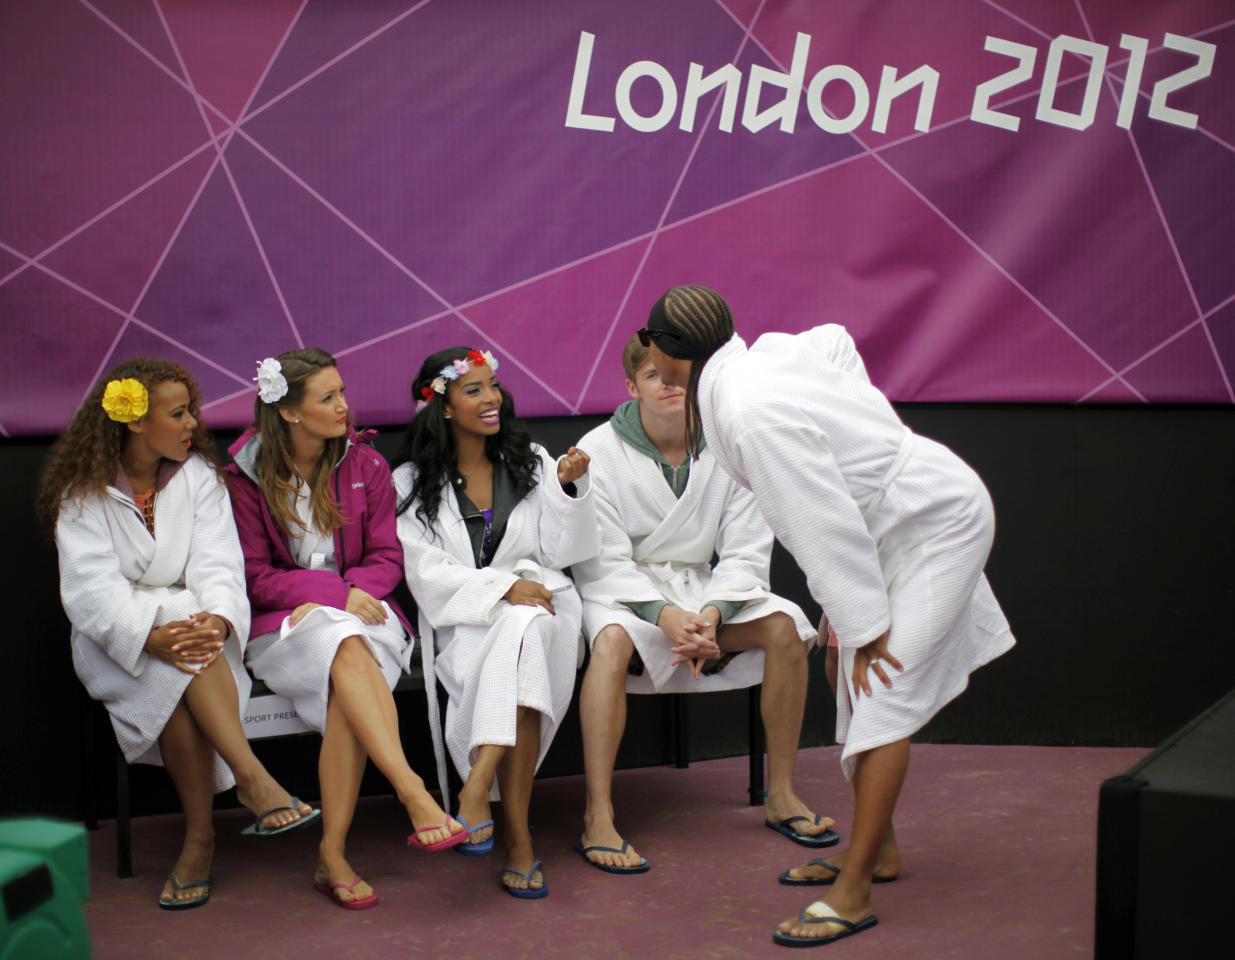 Dancers, wearing robes to keep themselves warm from the cold, wait outside the court before their performance at halftime at the London 2012 Olympic Games at Horse Guards Parade July 31, 2012.  REUTERS/Lucy Nicholson (BRITAIN  - Tags: SPORT OLYMPICS SPORT VOLLEYBALL ENVIRONMENT)